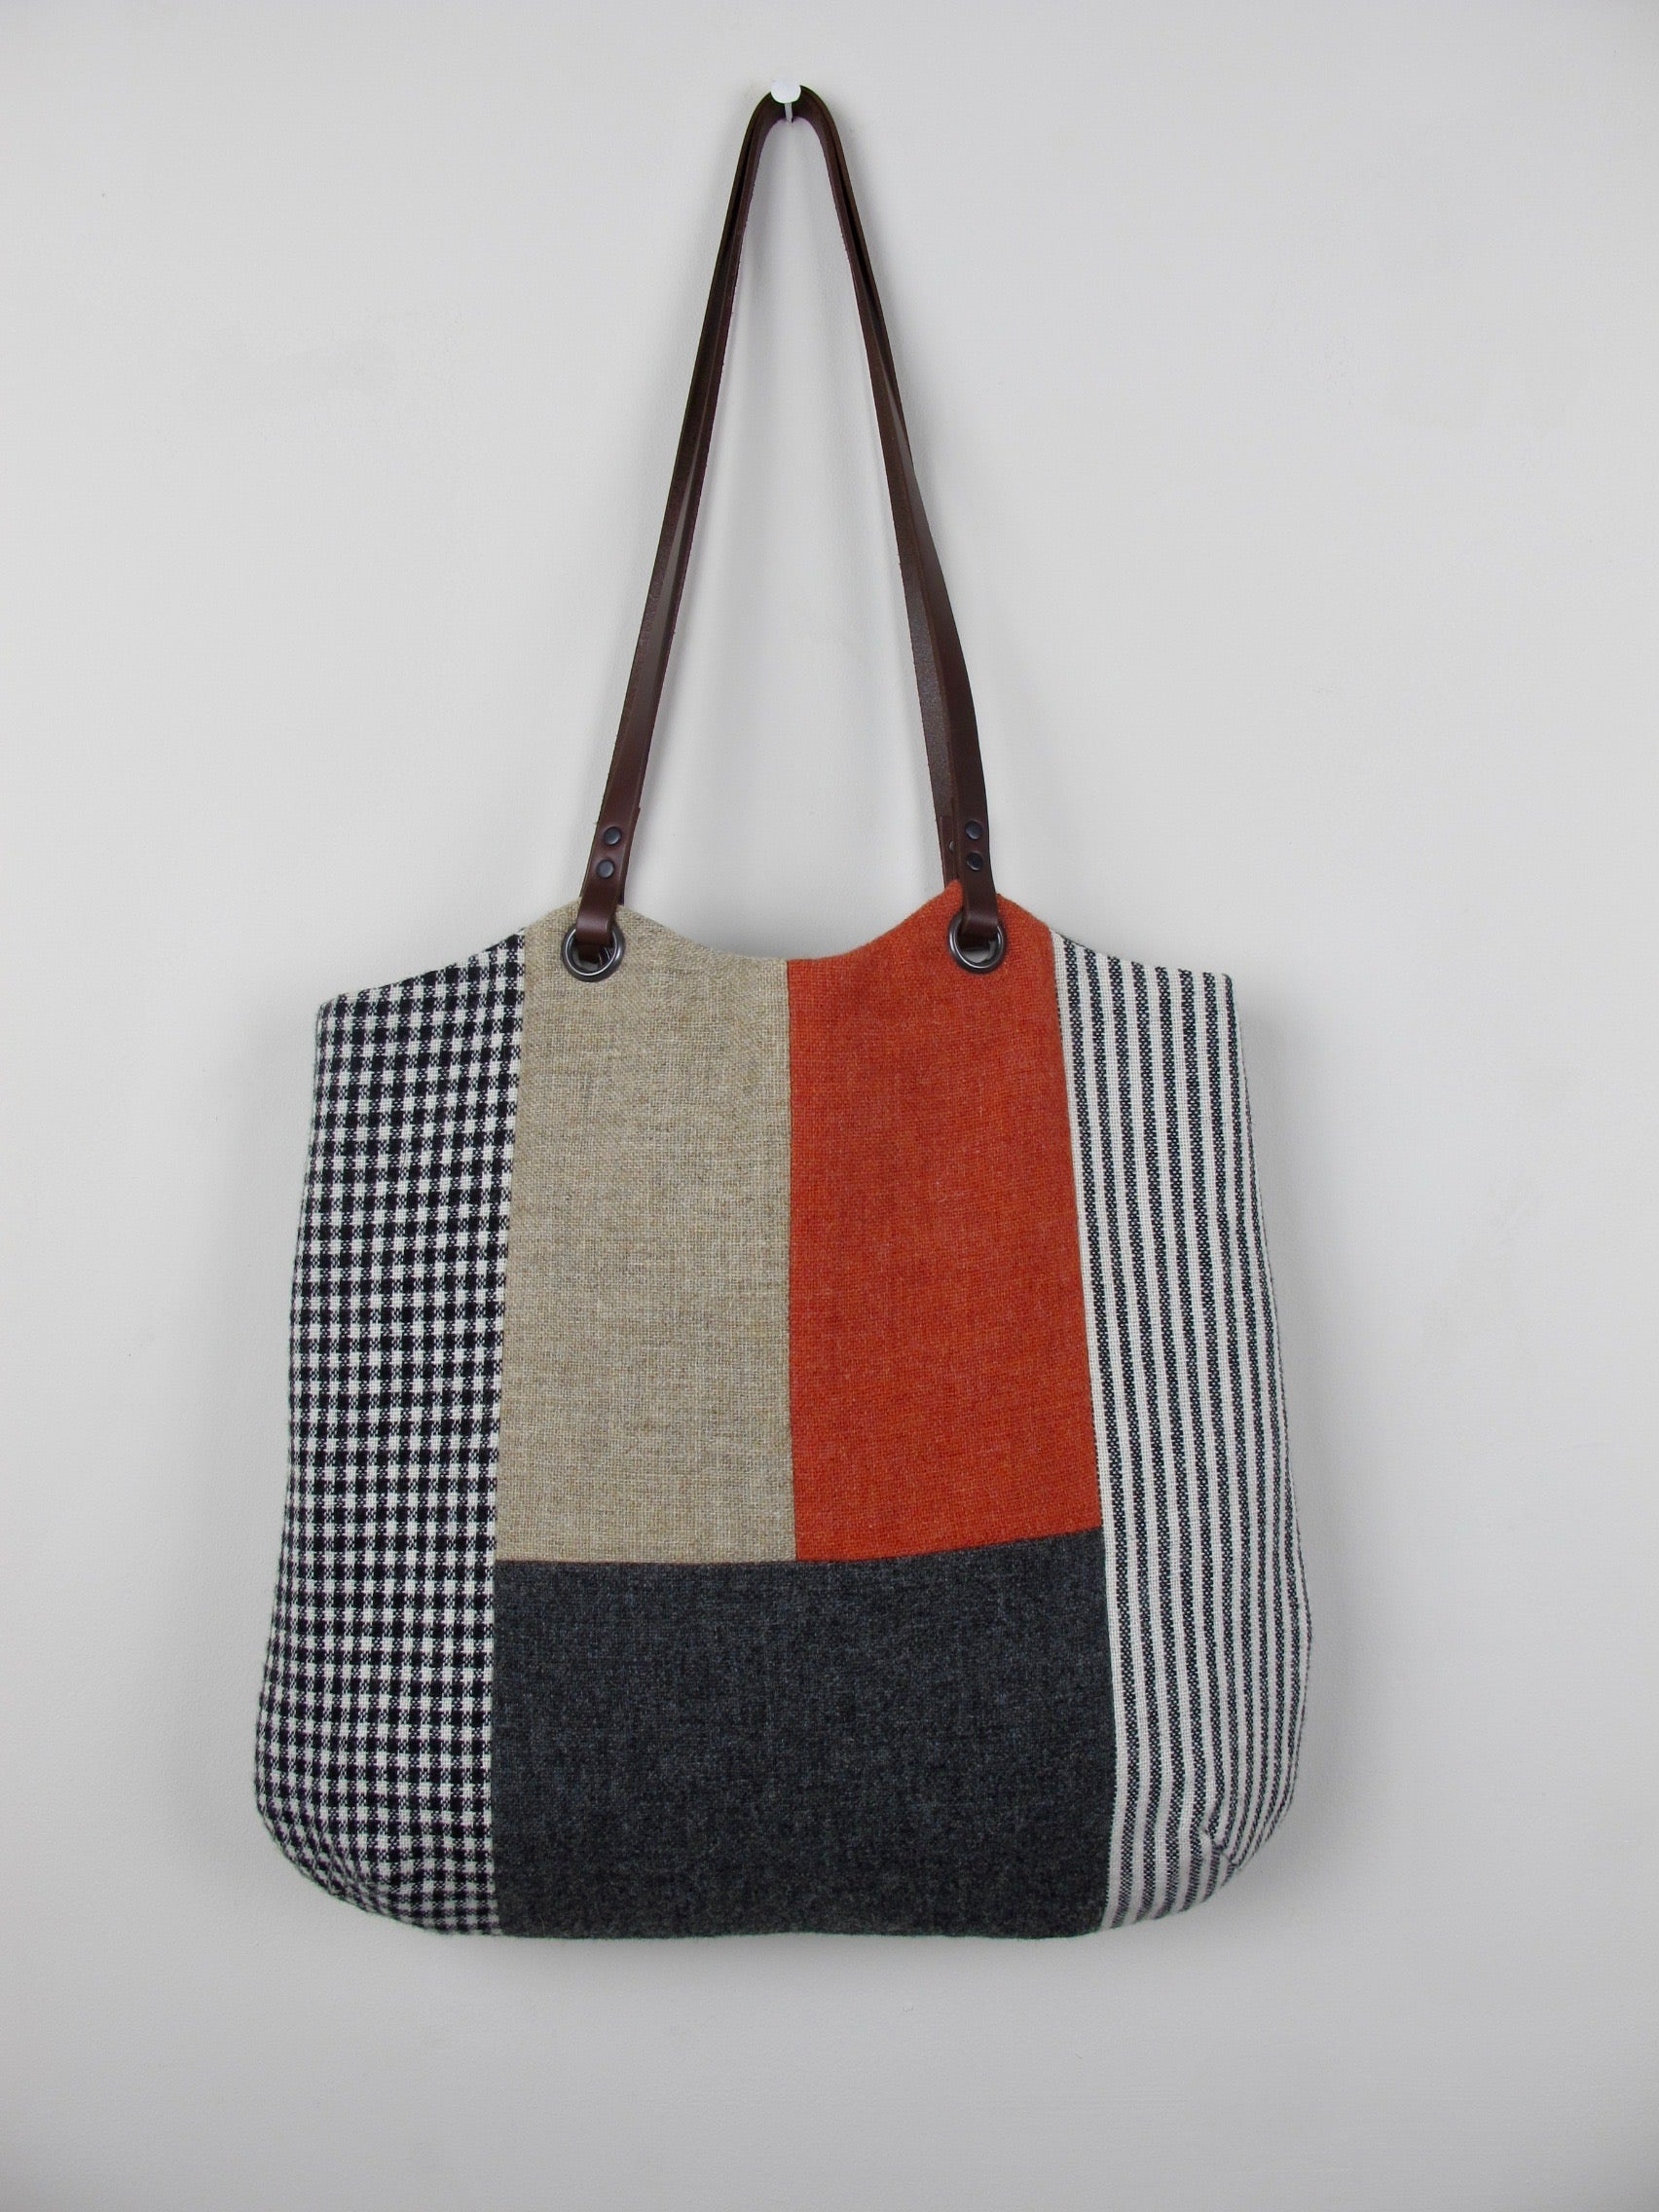 Patchwork Tote Bag - orange, straw, grey block I